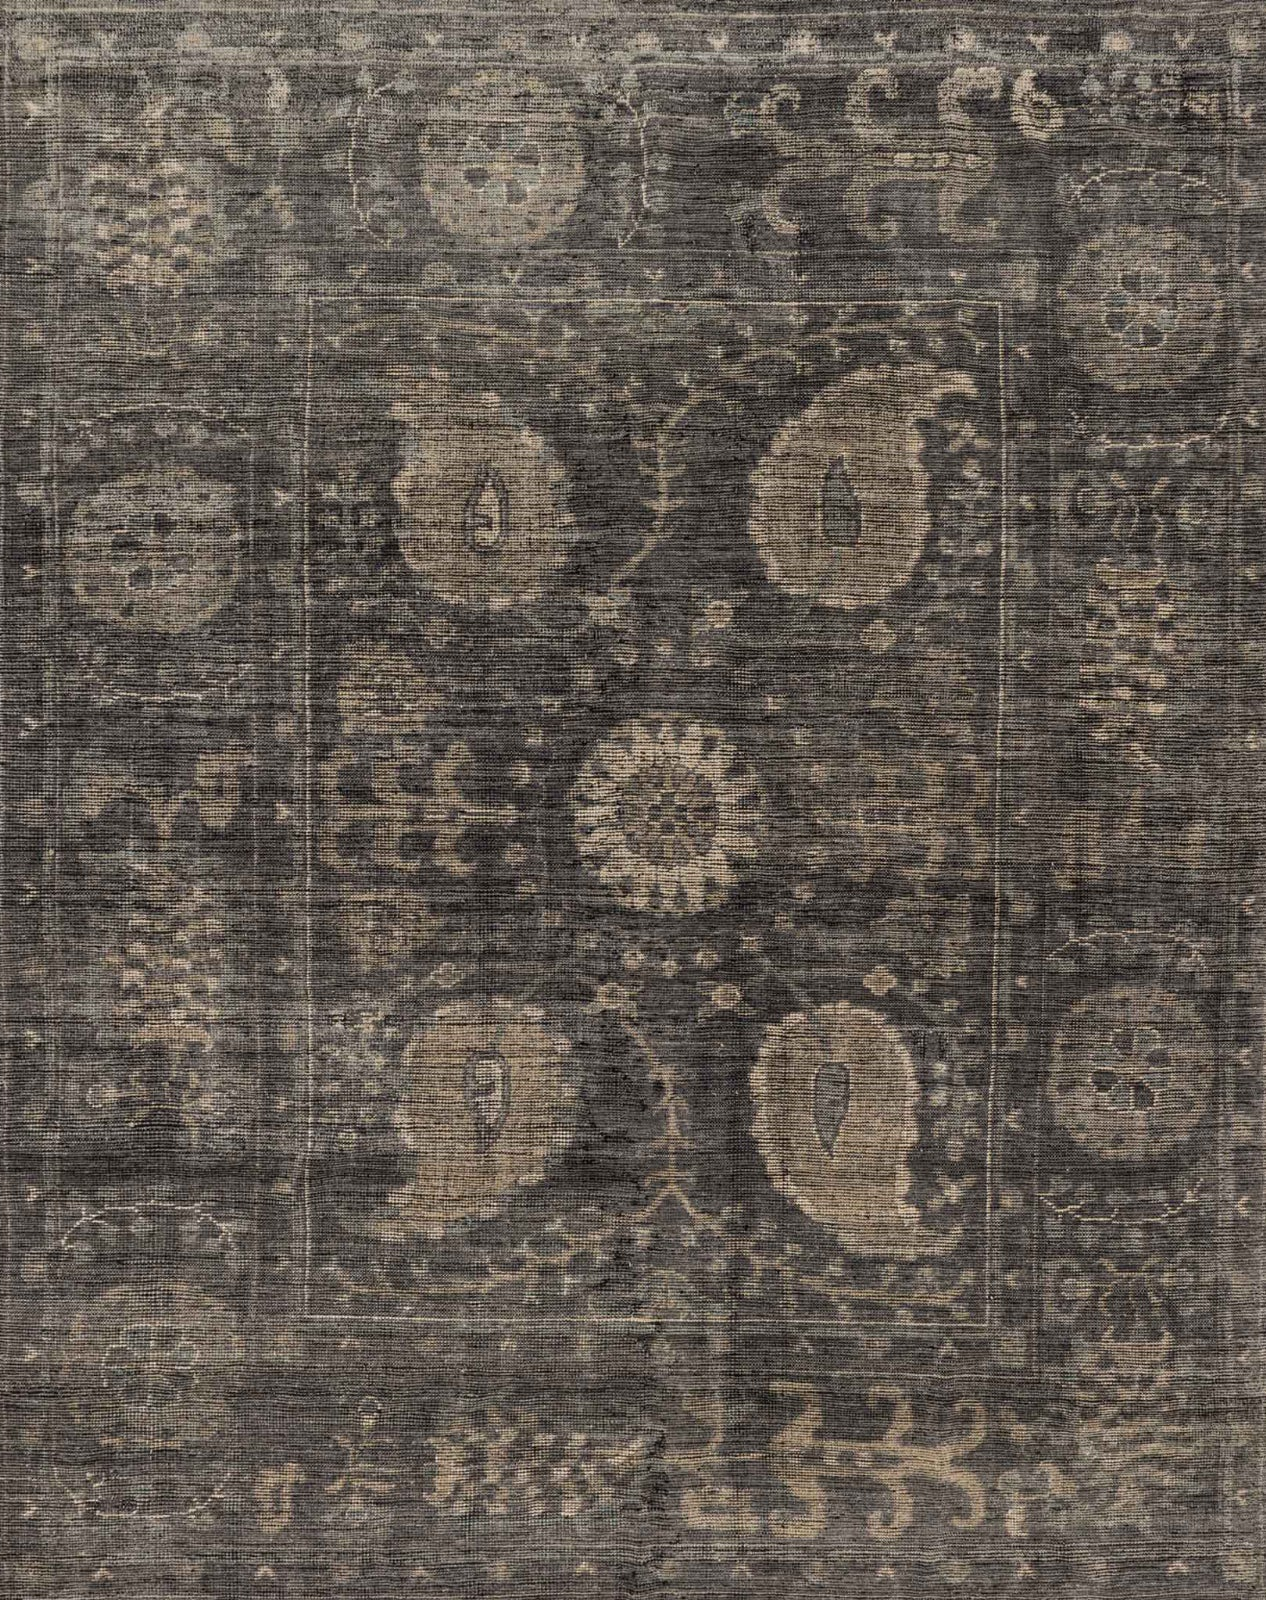 Loloi Heirloom HQ-02 Taupe/Taupe Area Rug main image